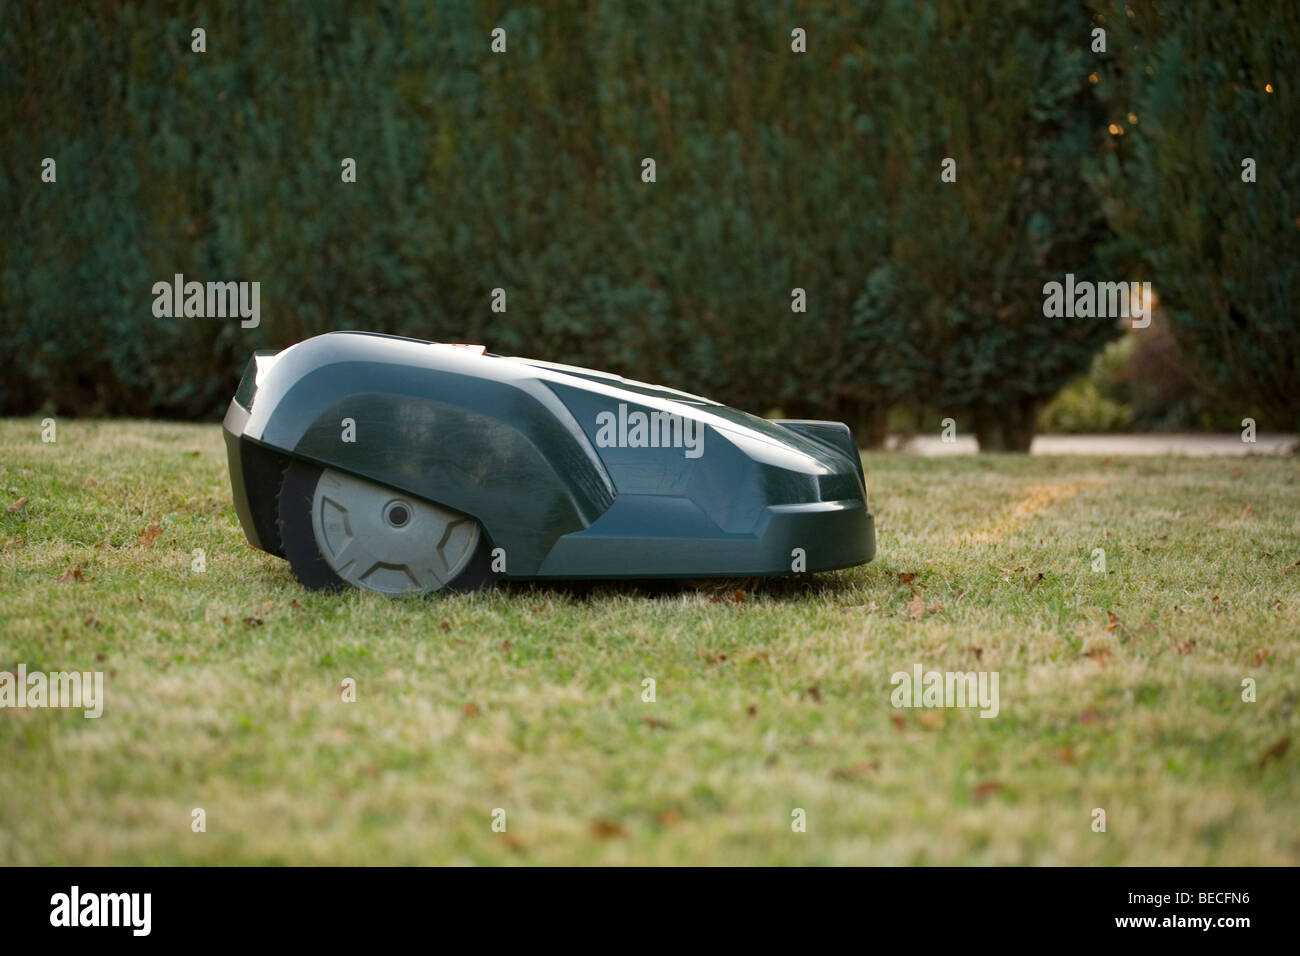 Side view of a green automatic robot lawnmower cutting grass in front of a green hedge - Stock Image